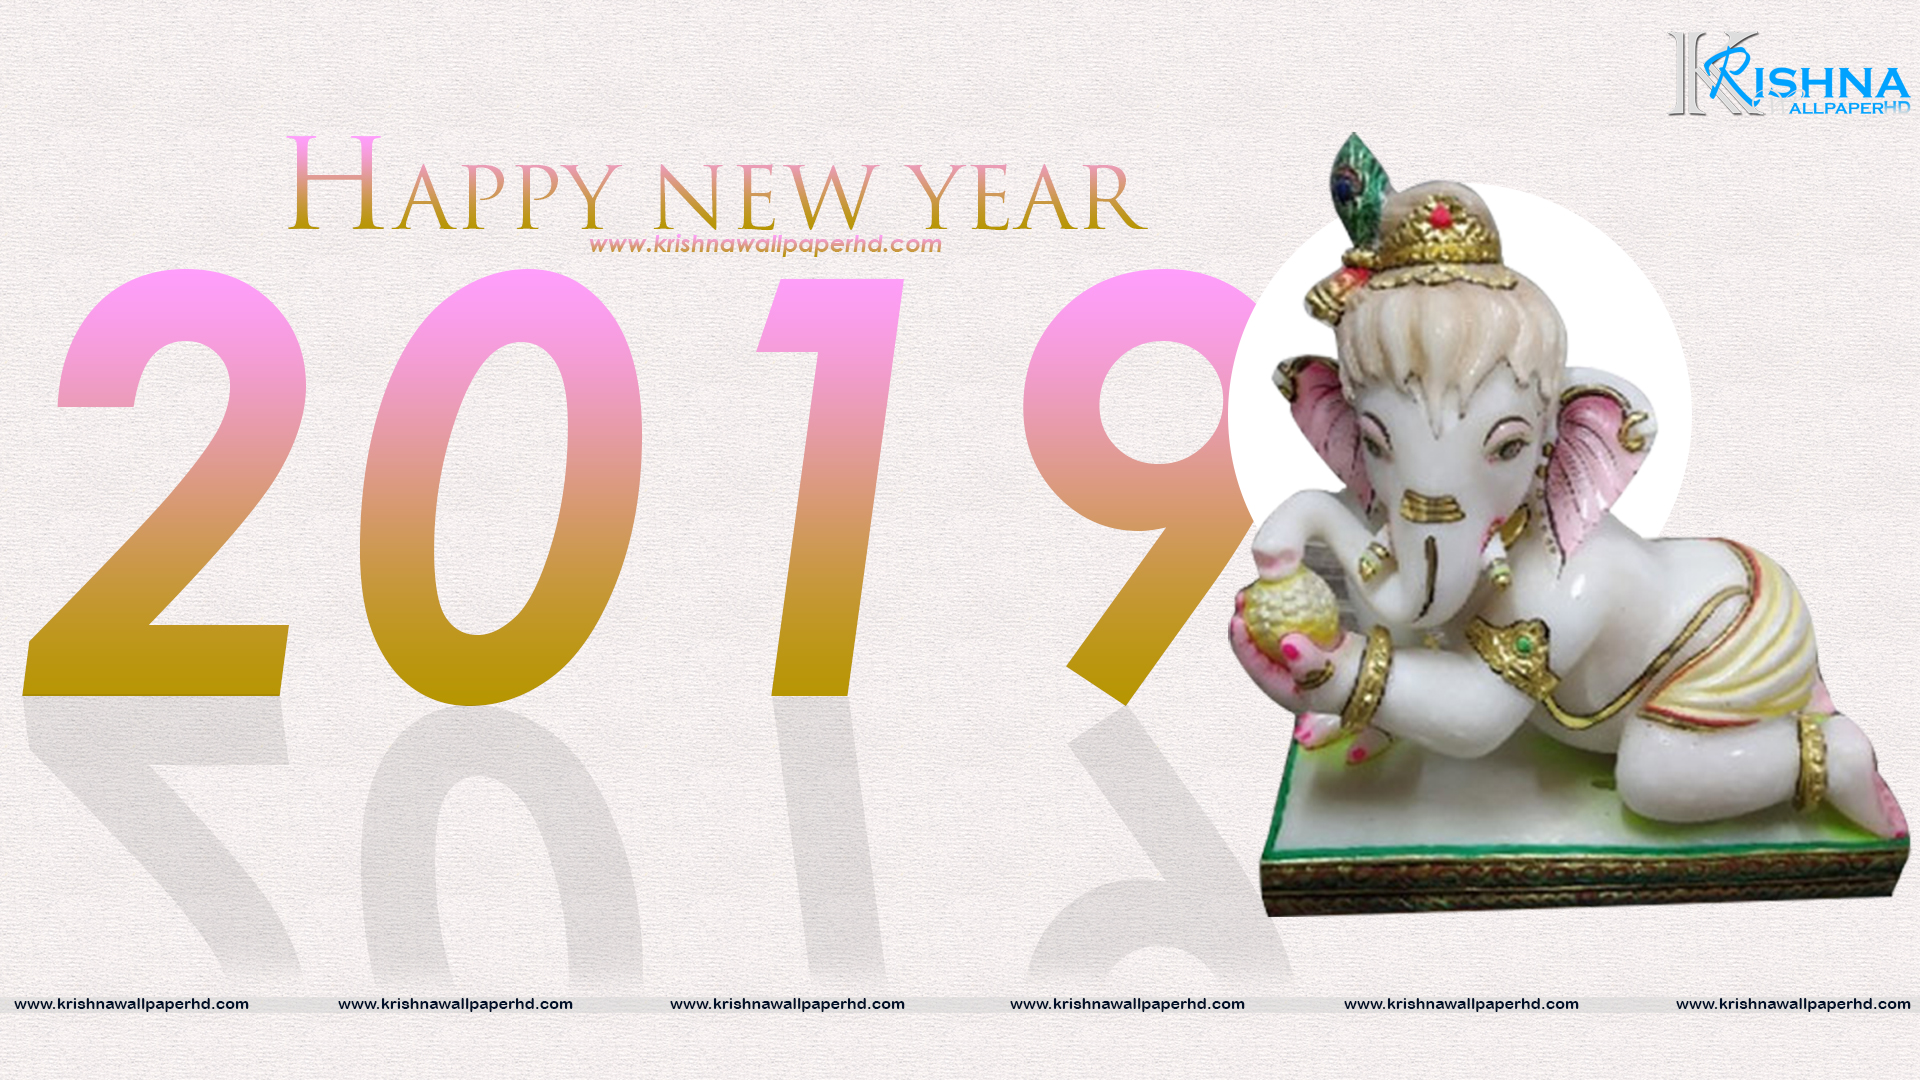 Full HD Size Photo of Happy New Year 2019 Free Download